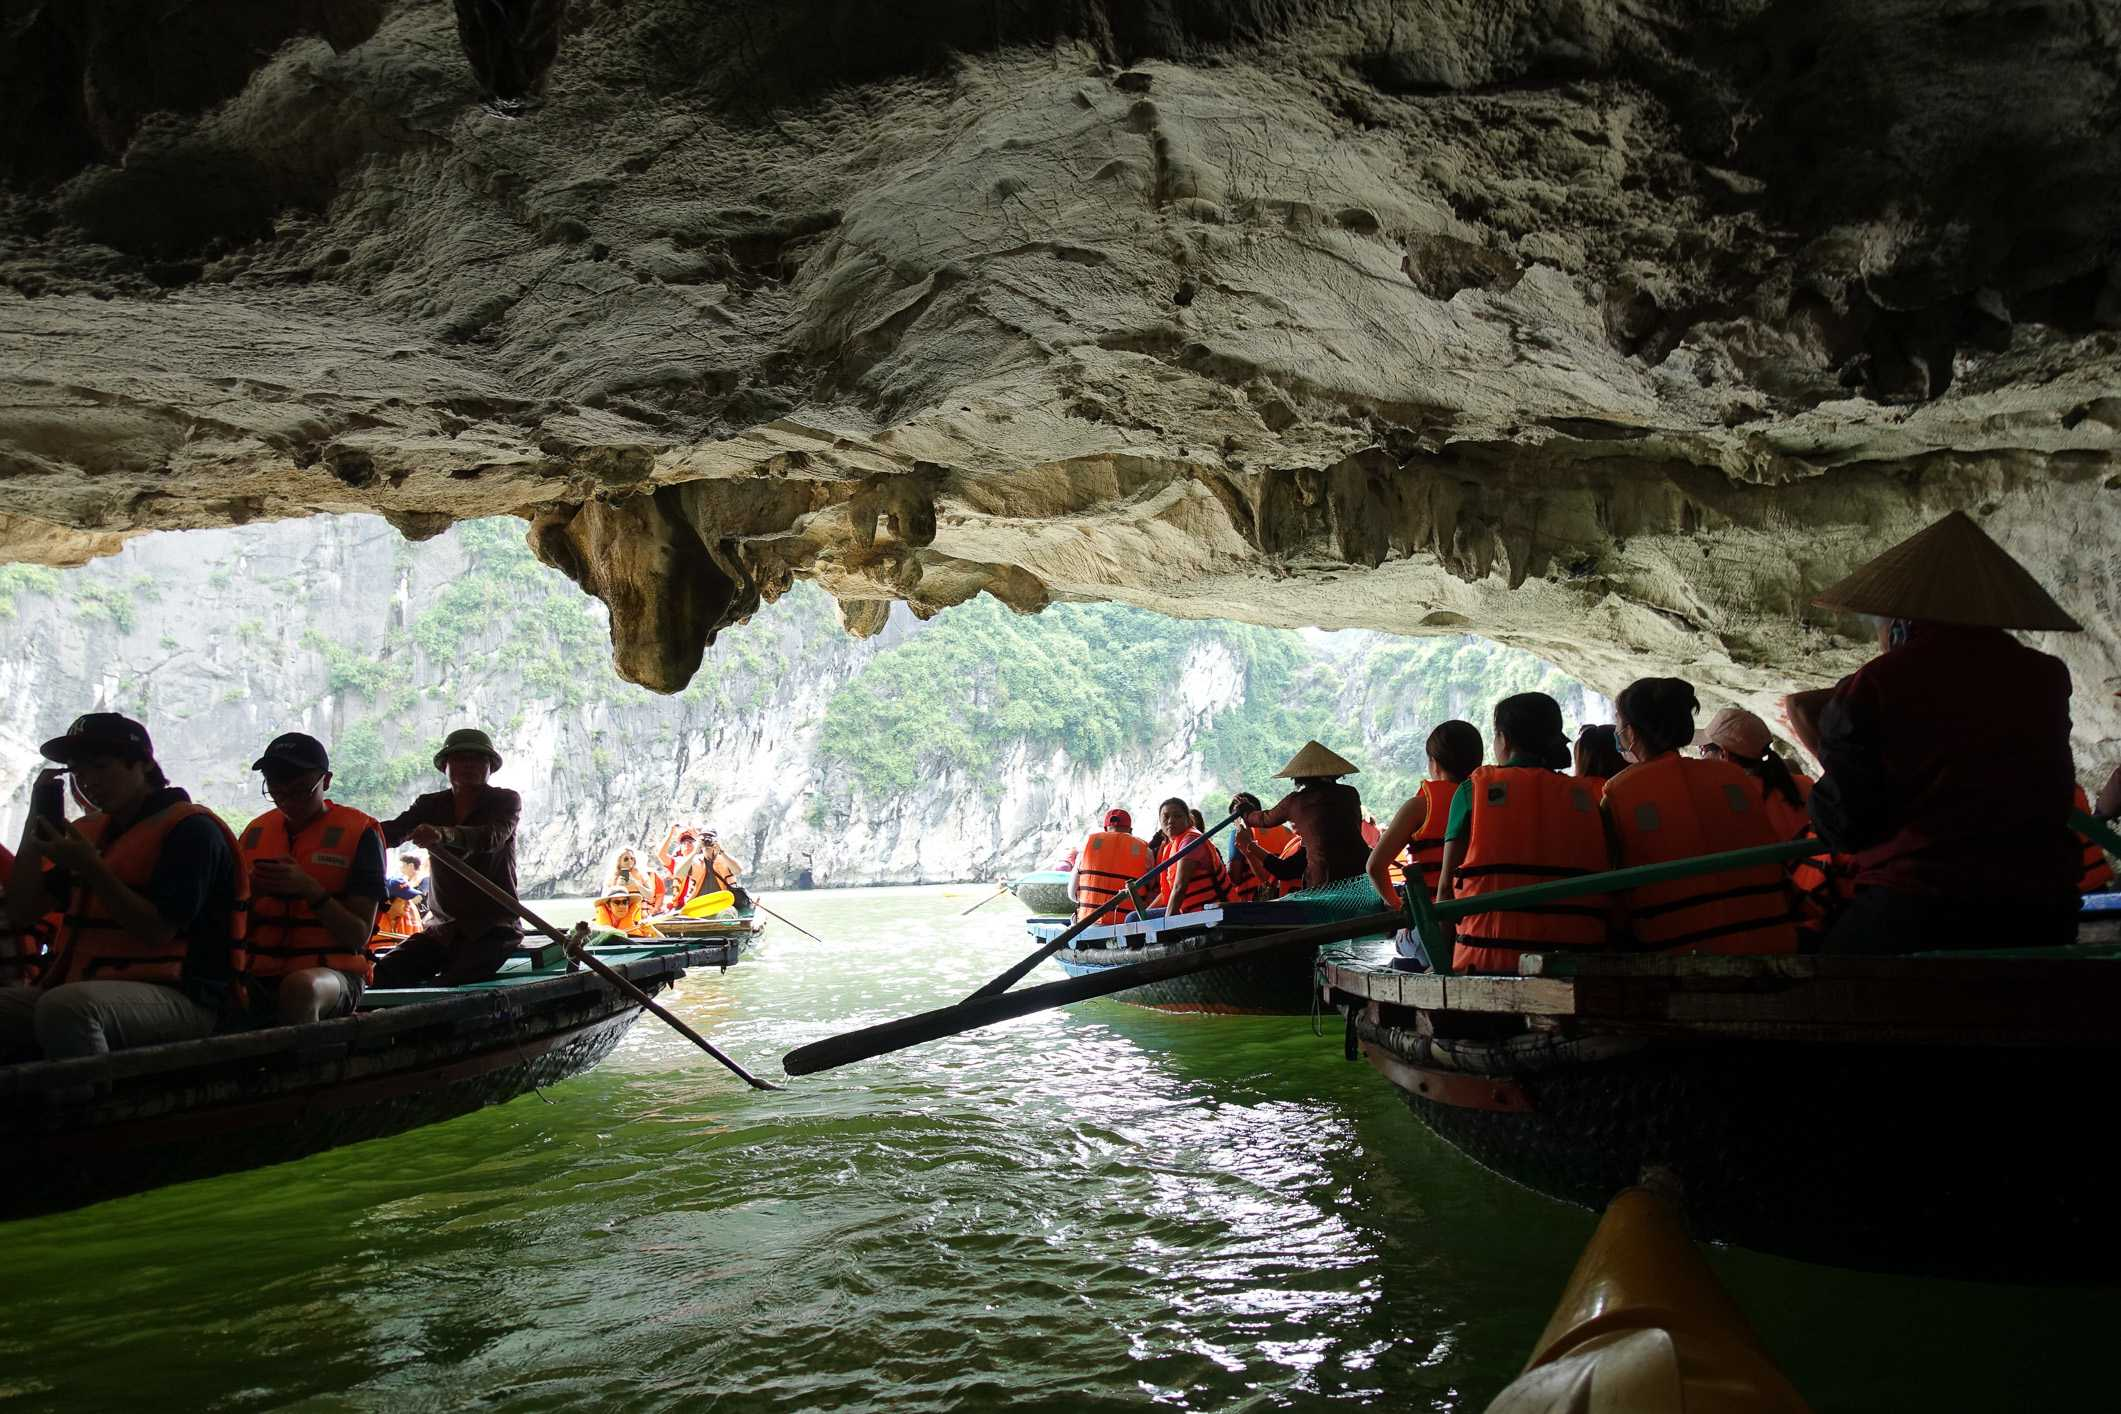 Kayaking in cave